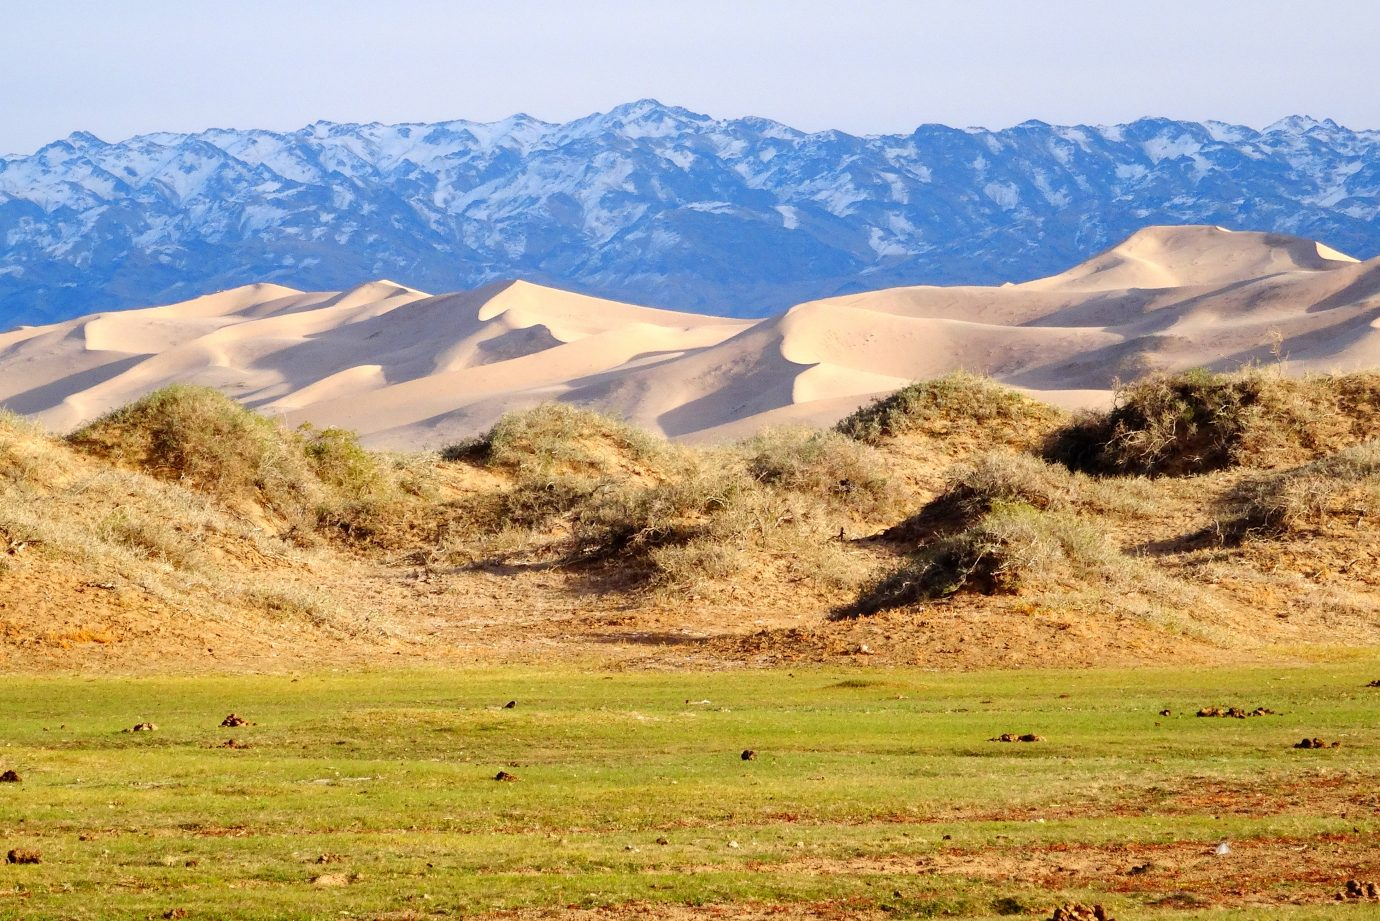 Green grass, sand dunes and snowy mountain range